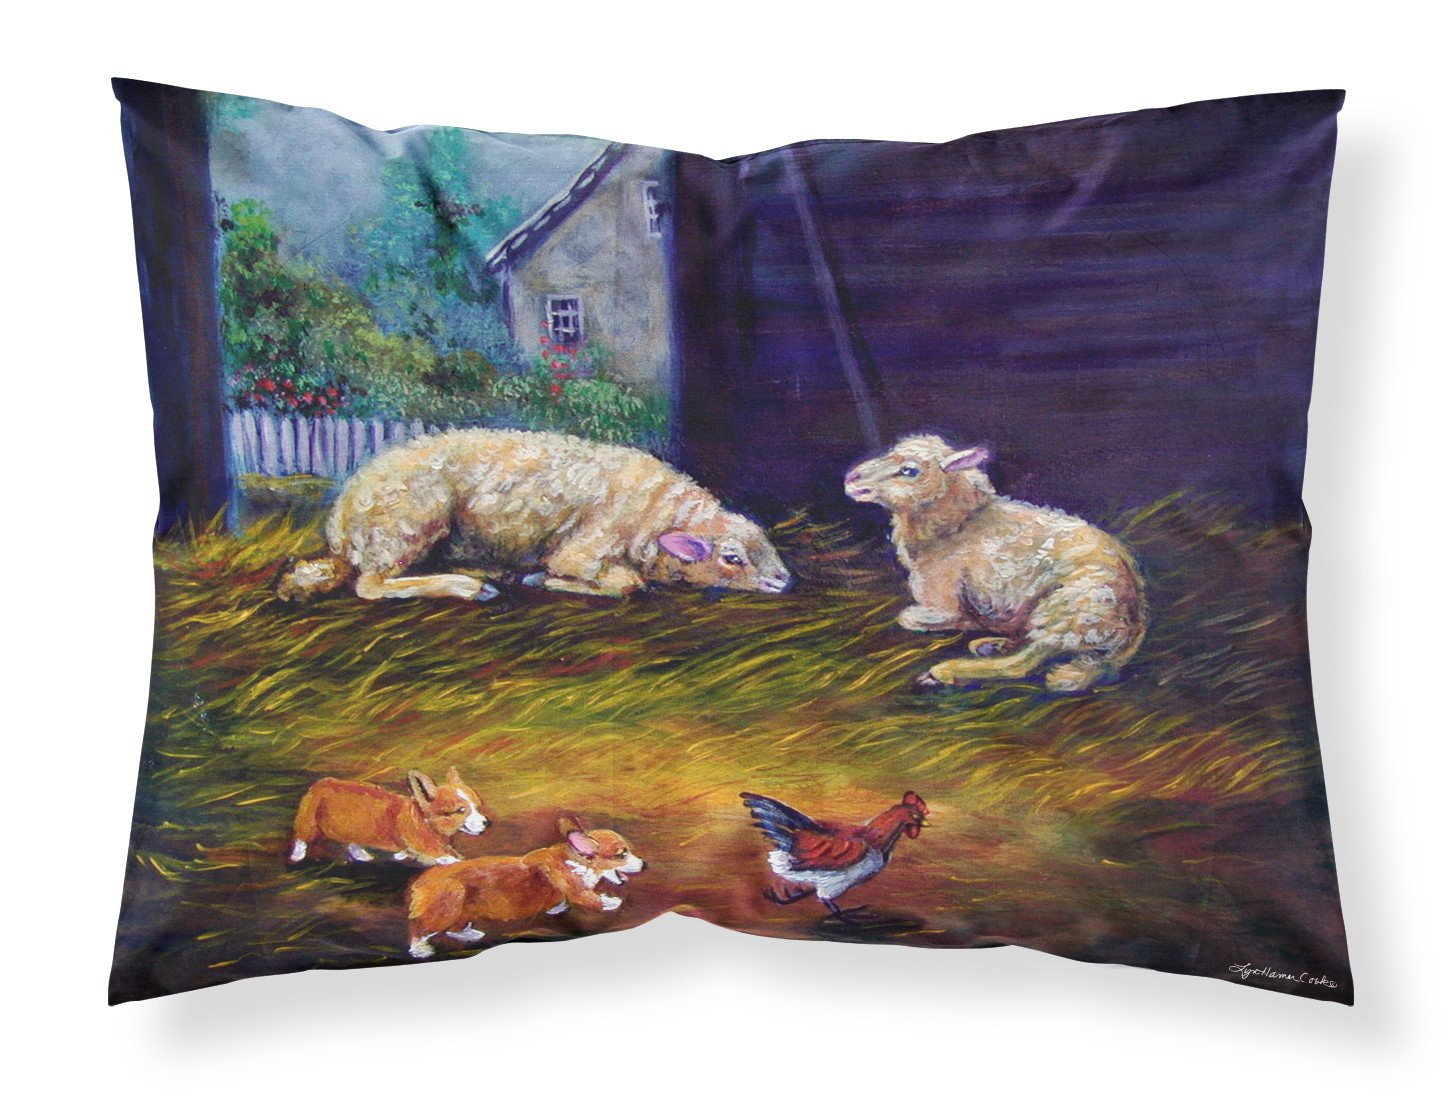 Corgi Chaos in the barn with sheep Fabric Standard Pillowcase 7322PILLOWCASE by Caroline's Treasures